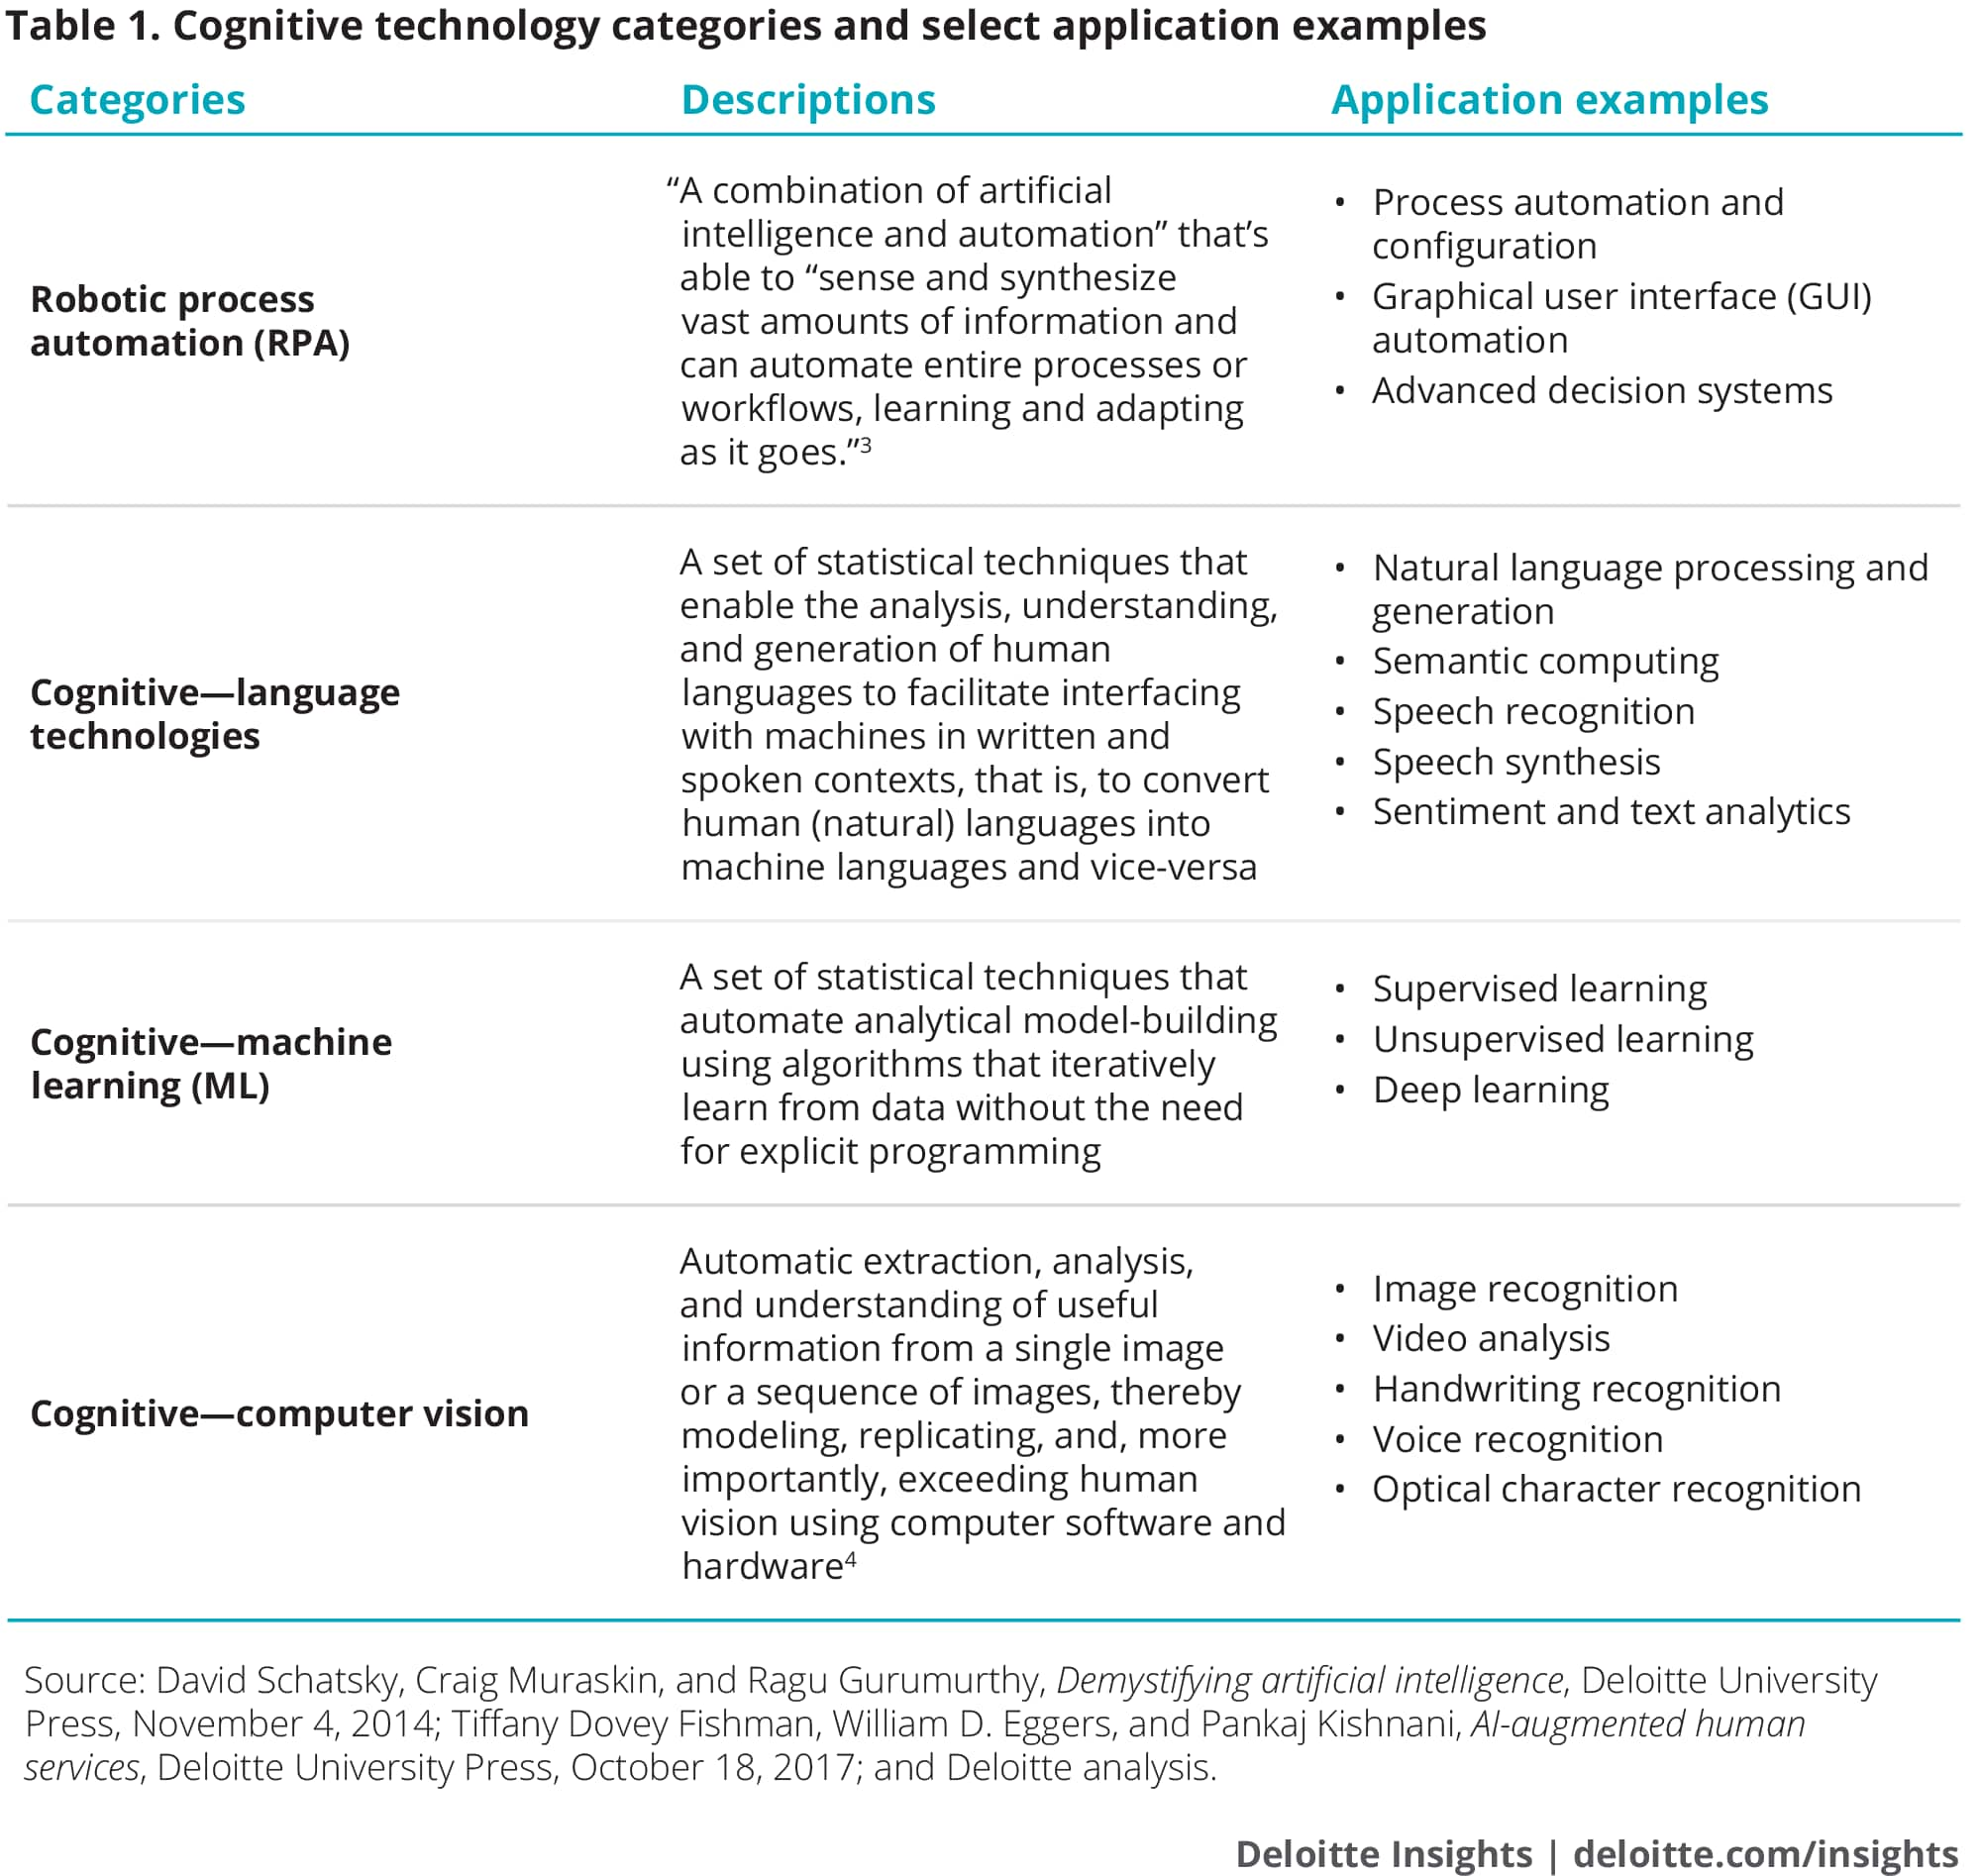 Cognitive technology categories and select application examples